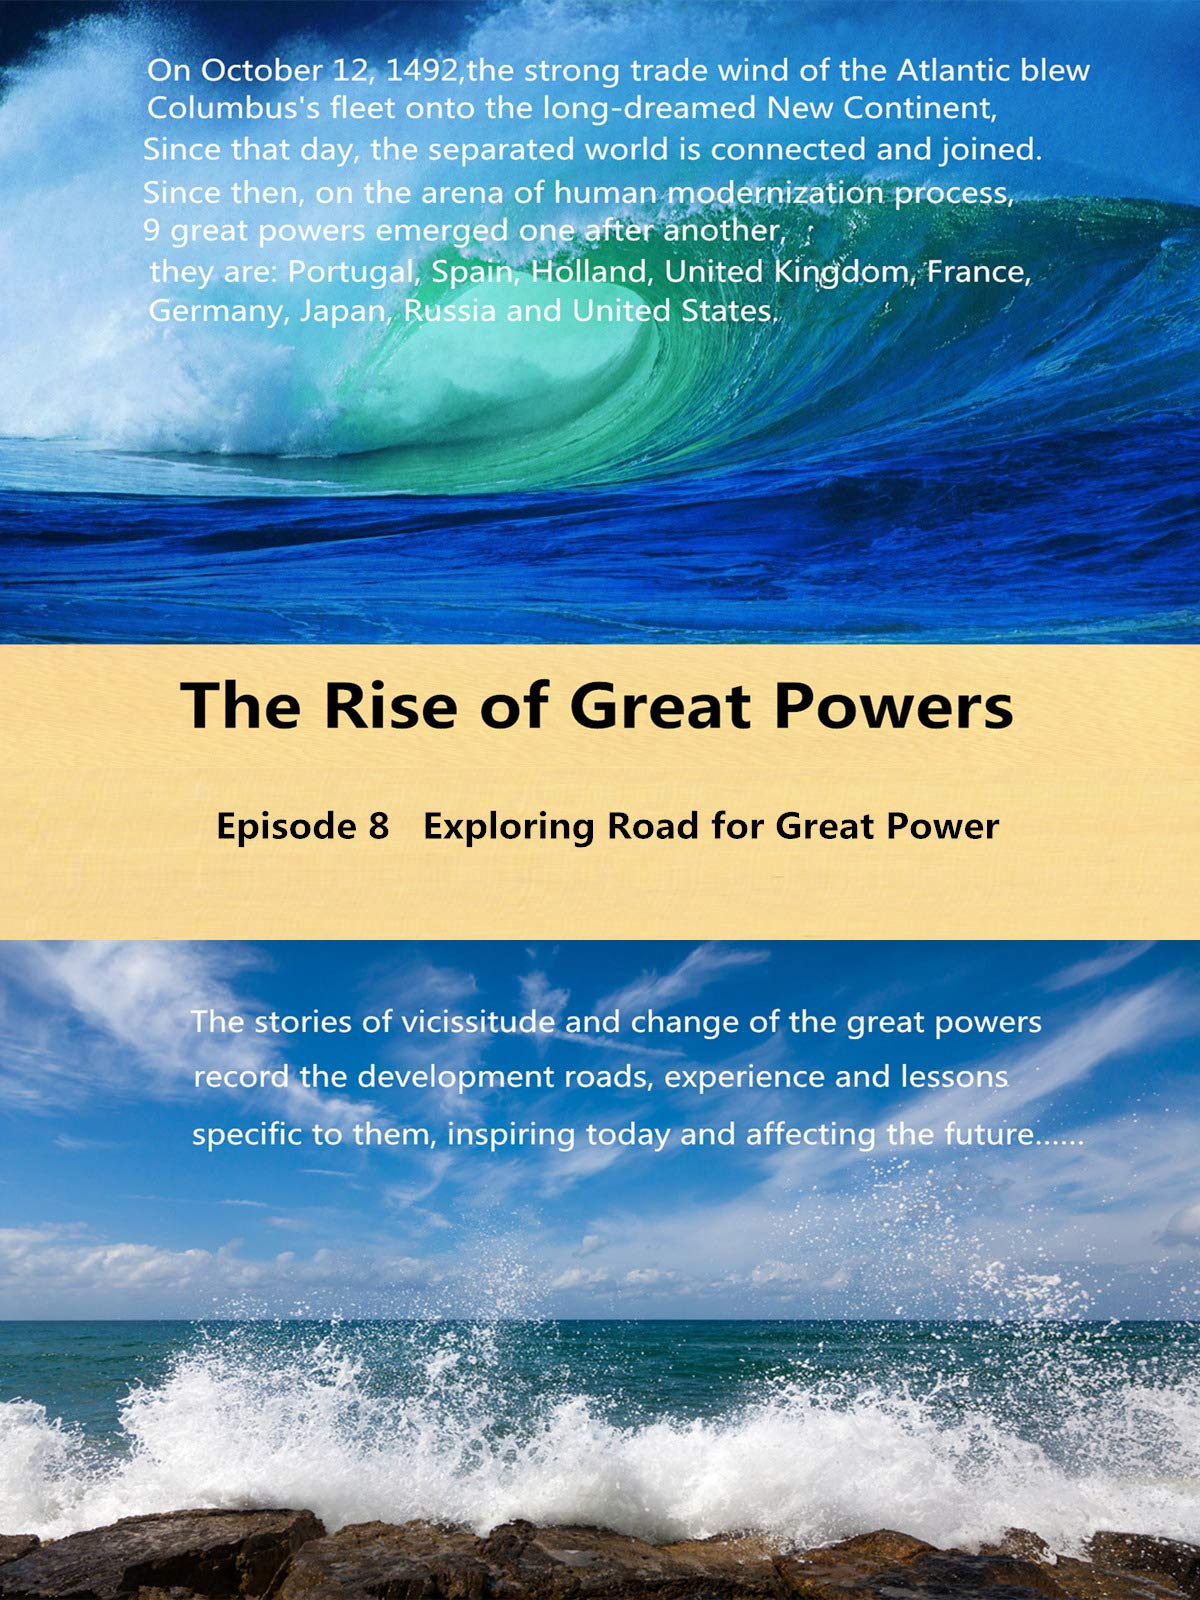 The Rise of Great Powers - Episode 8 on Amazon Prime Instant Video UK